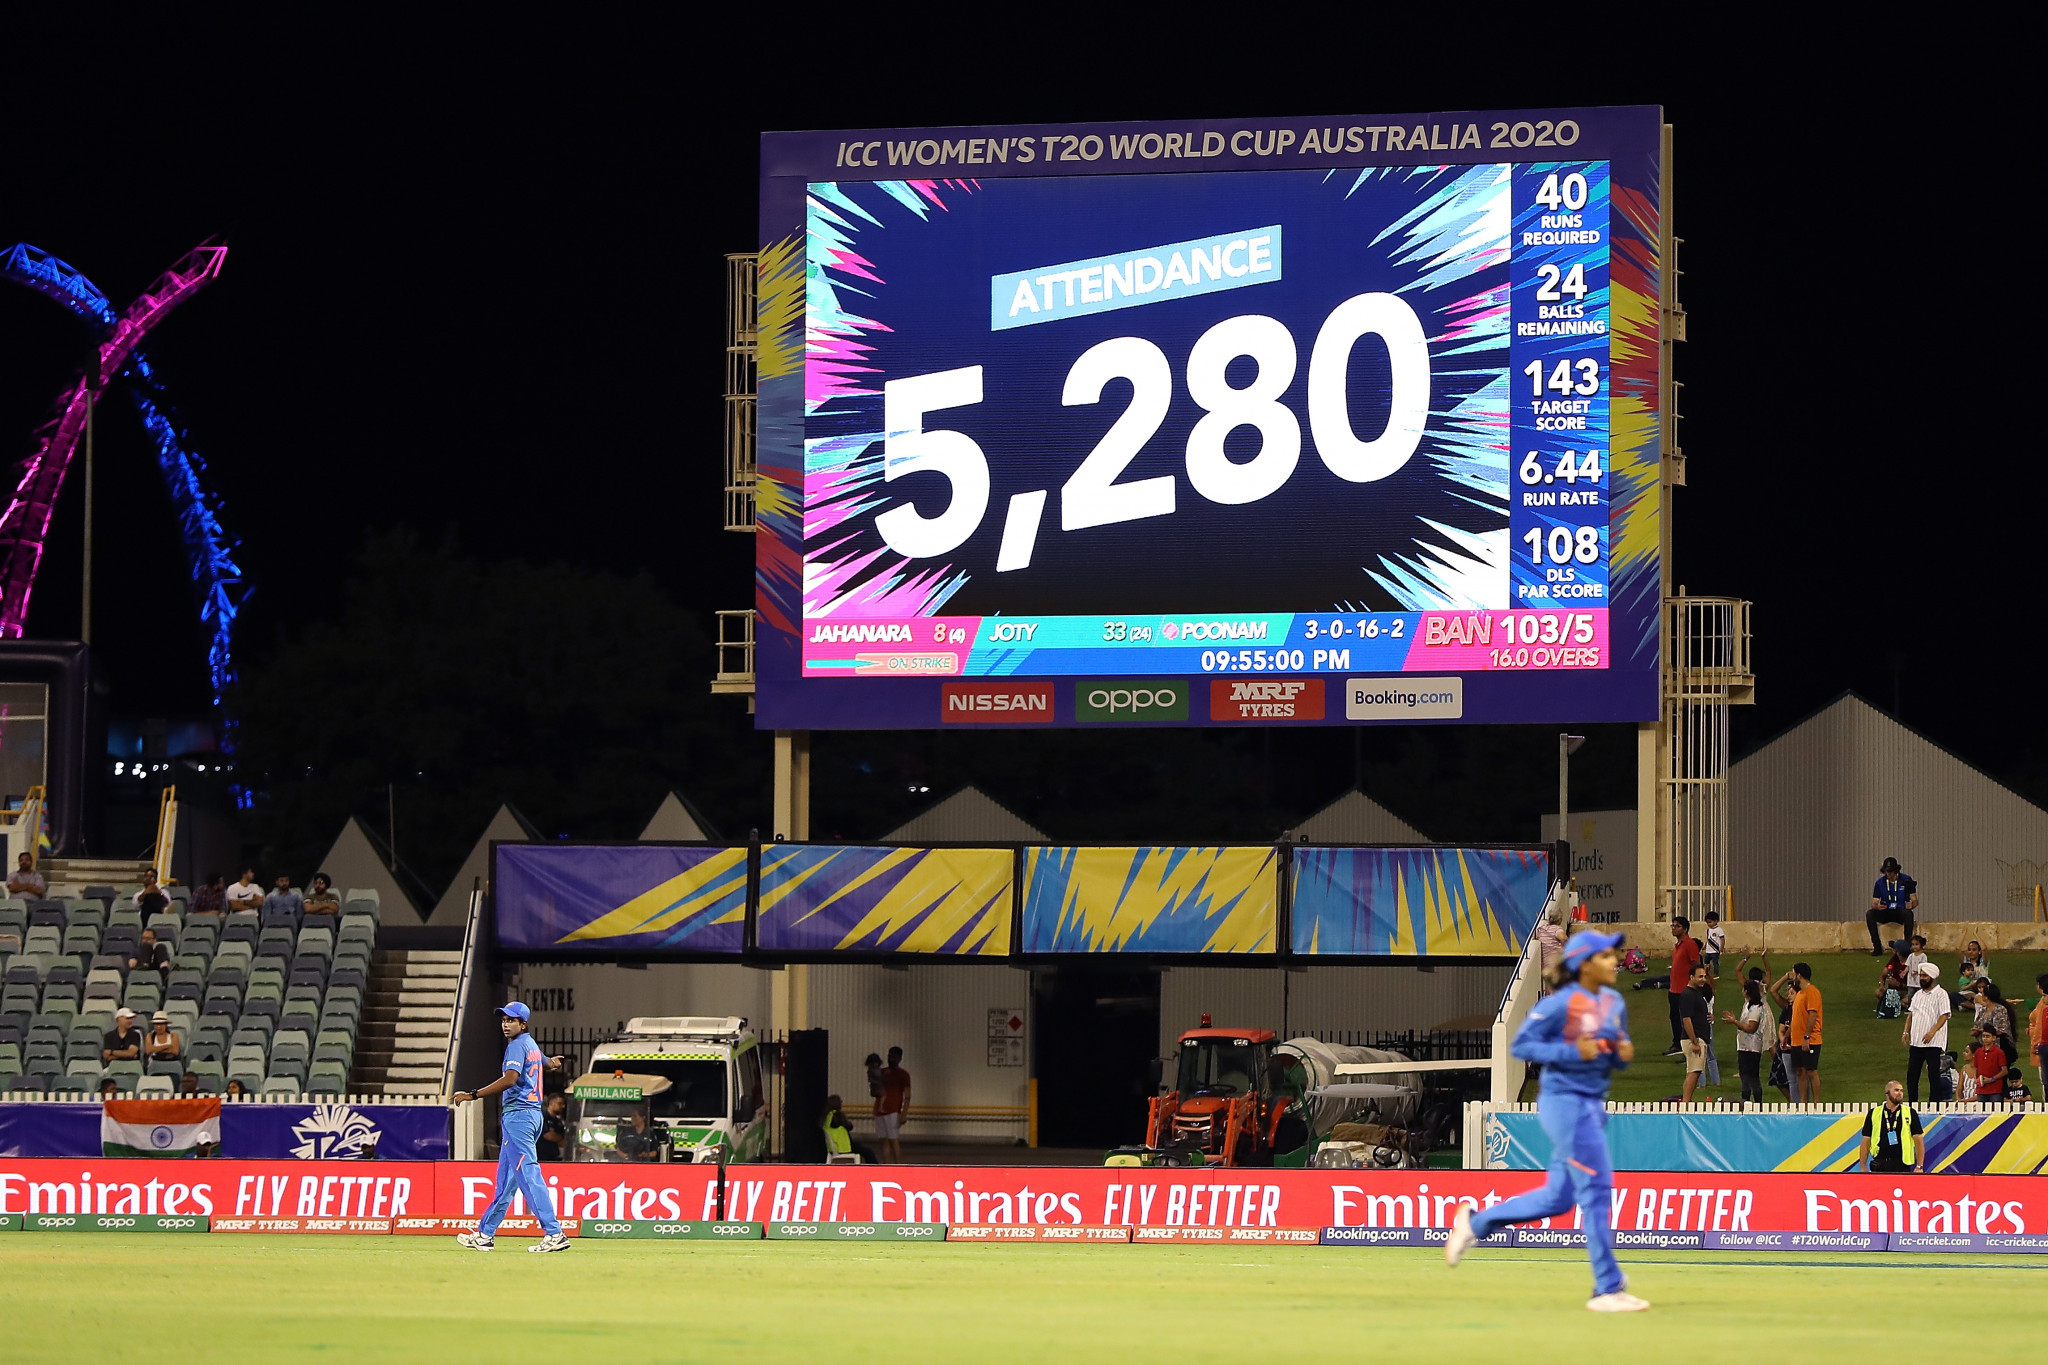 Women's T20 World Cup sets series of Australian records